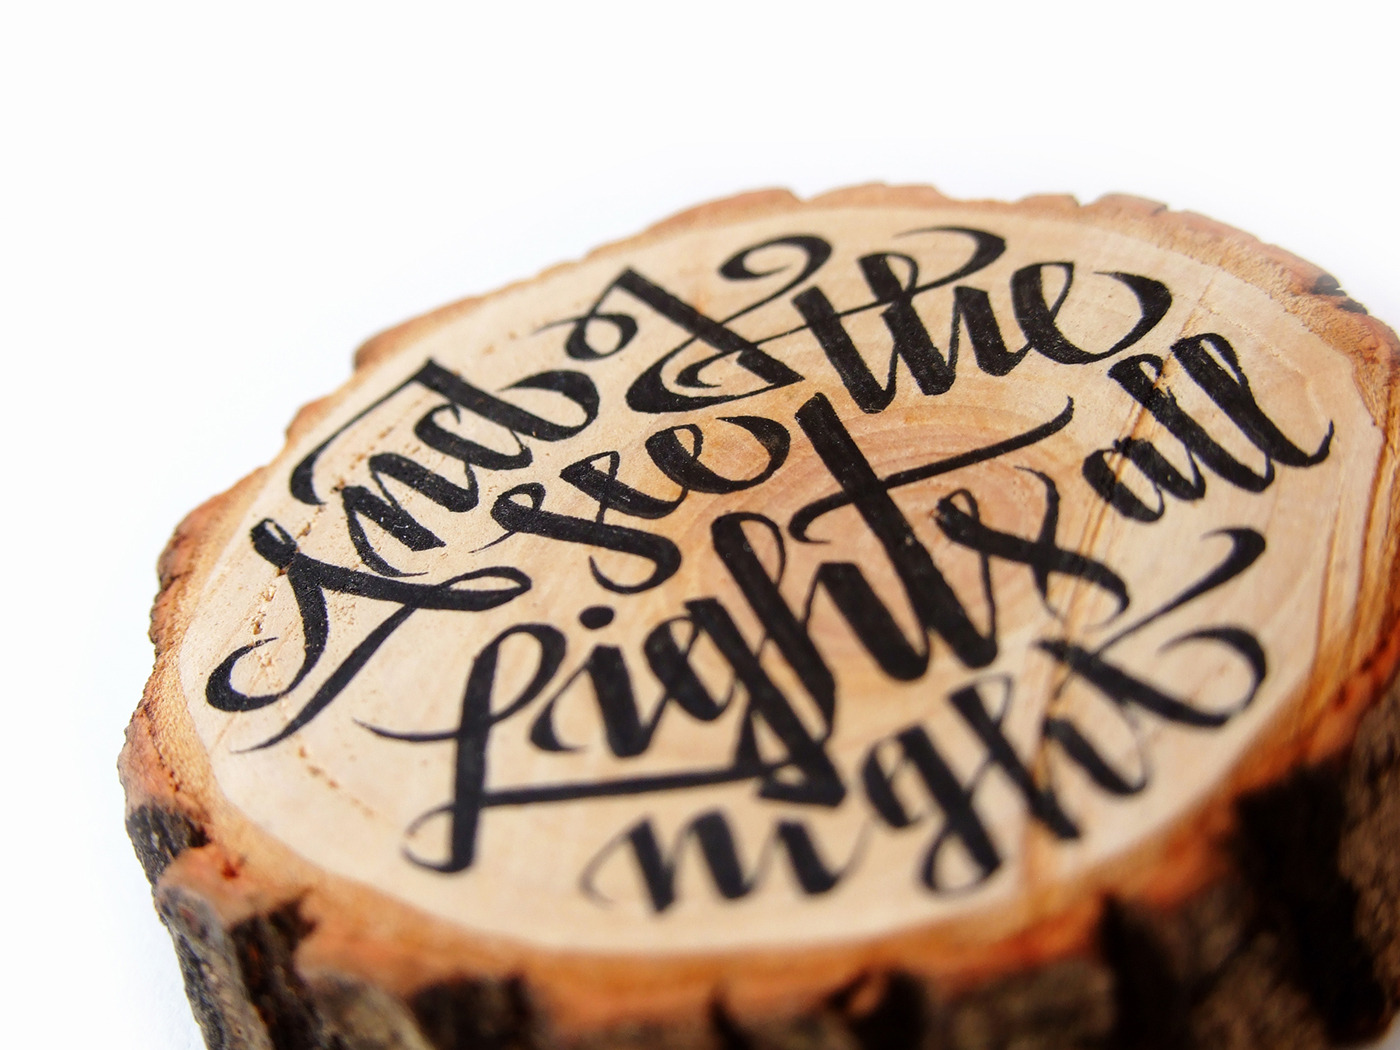 wood ink pen hand-lettering lettering typo handdrawn handmade letter graphic type pencil touche amore hot water music Lyrics